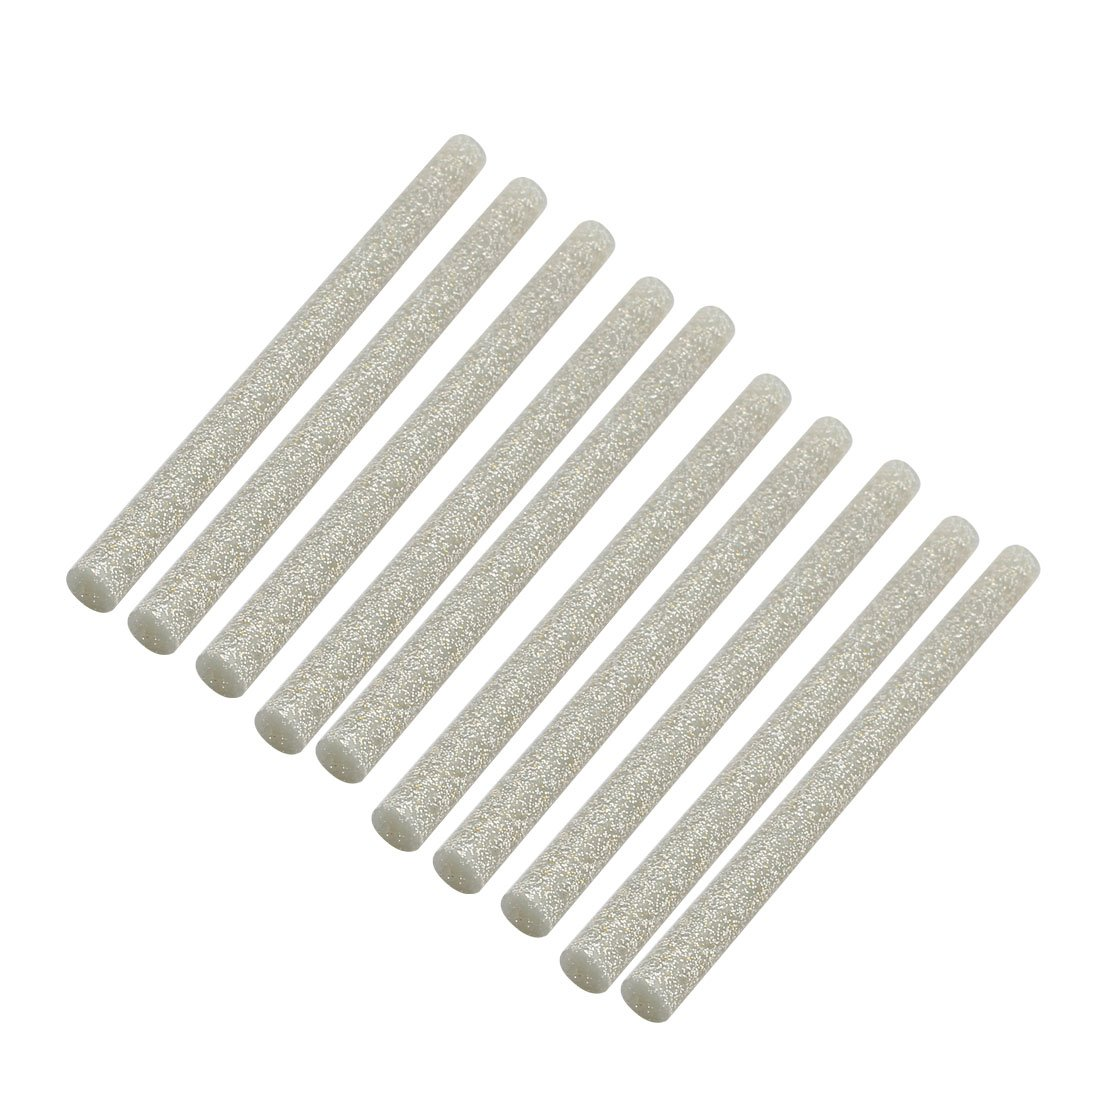 uxcell 10pcs 7mm x 100mm Economy Hot Melt Glue Sticks Silver Tone for DIY Small Craft Projects